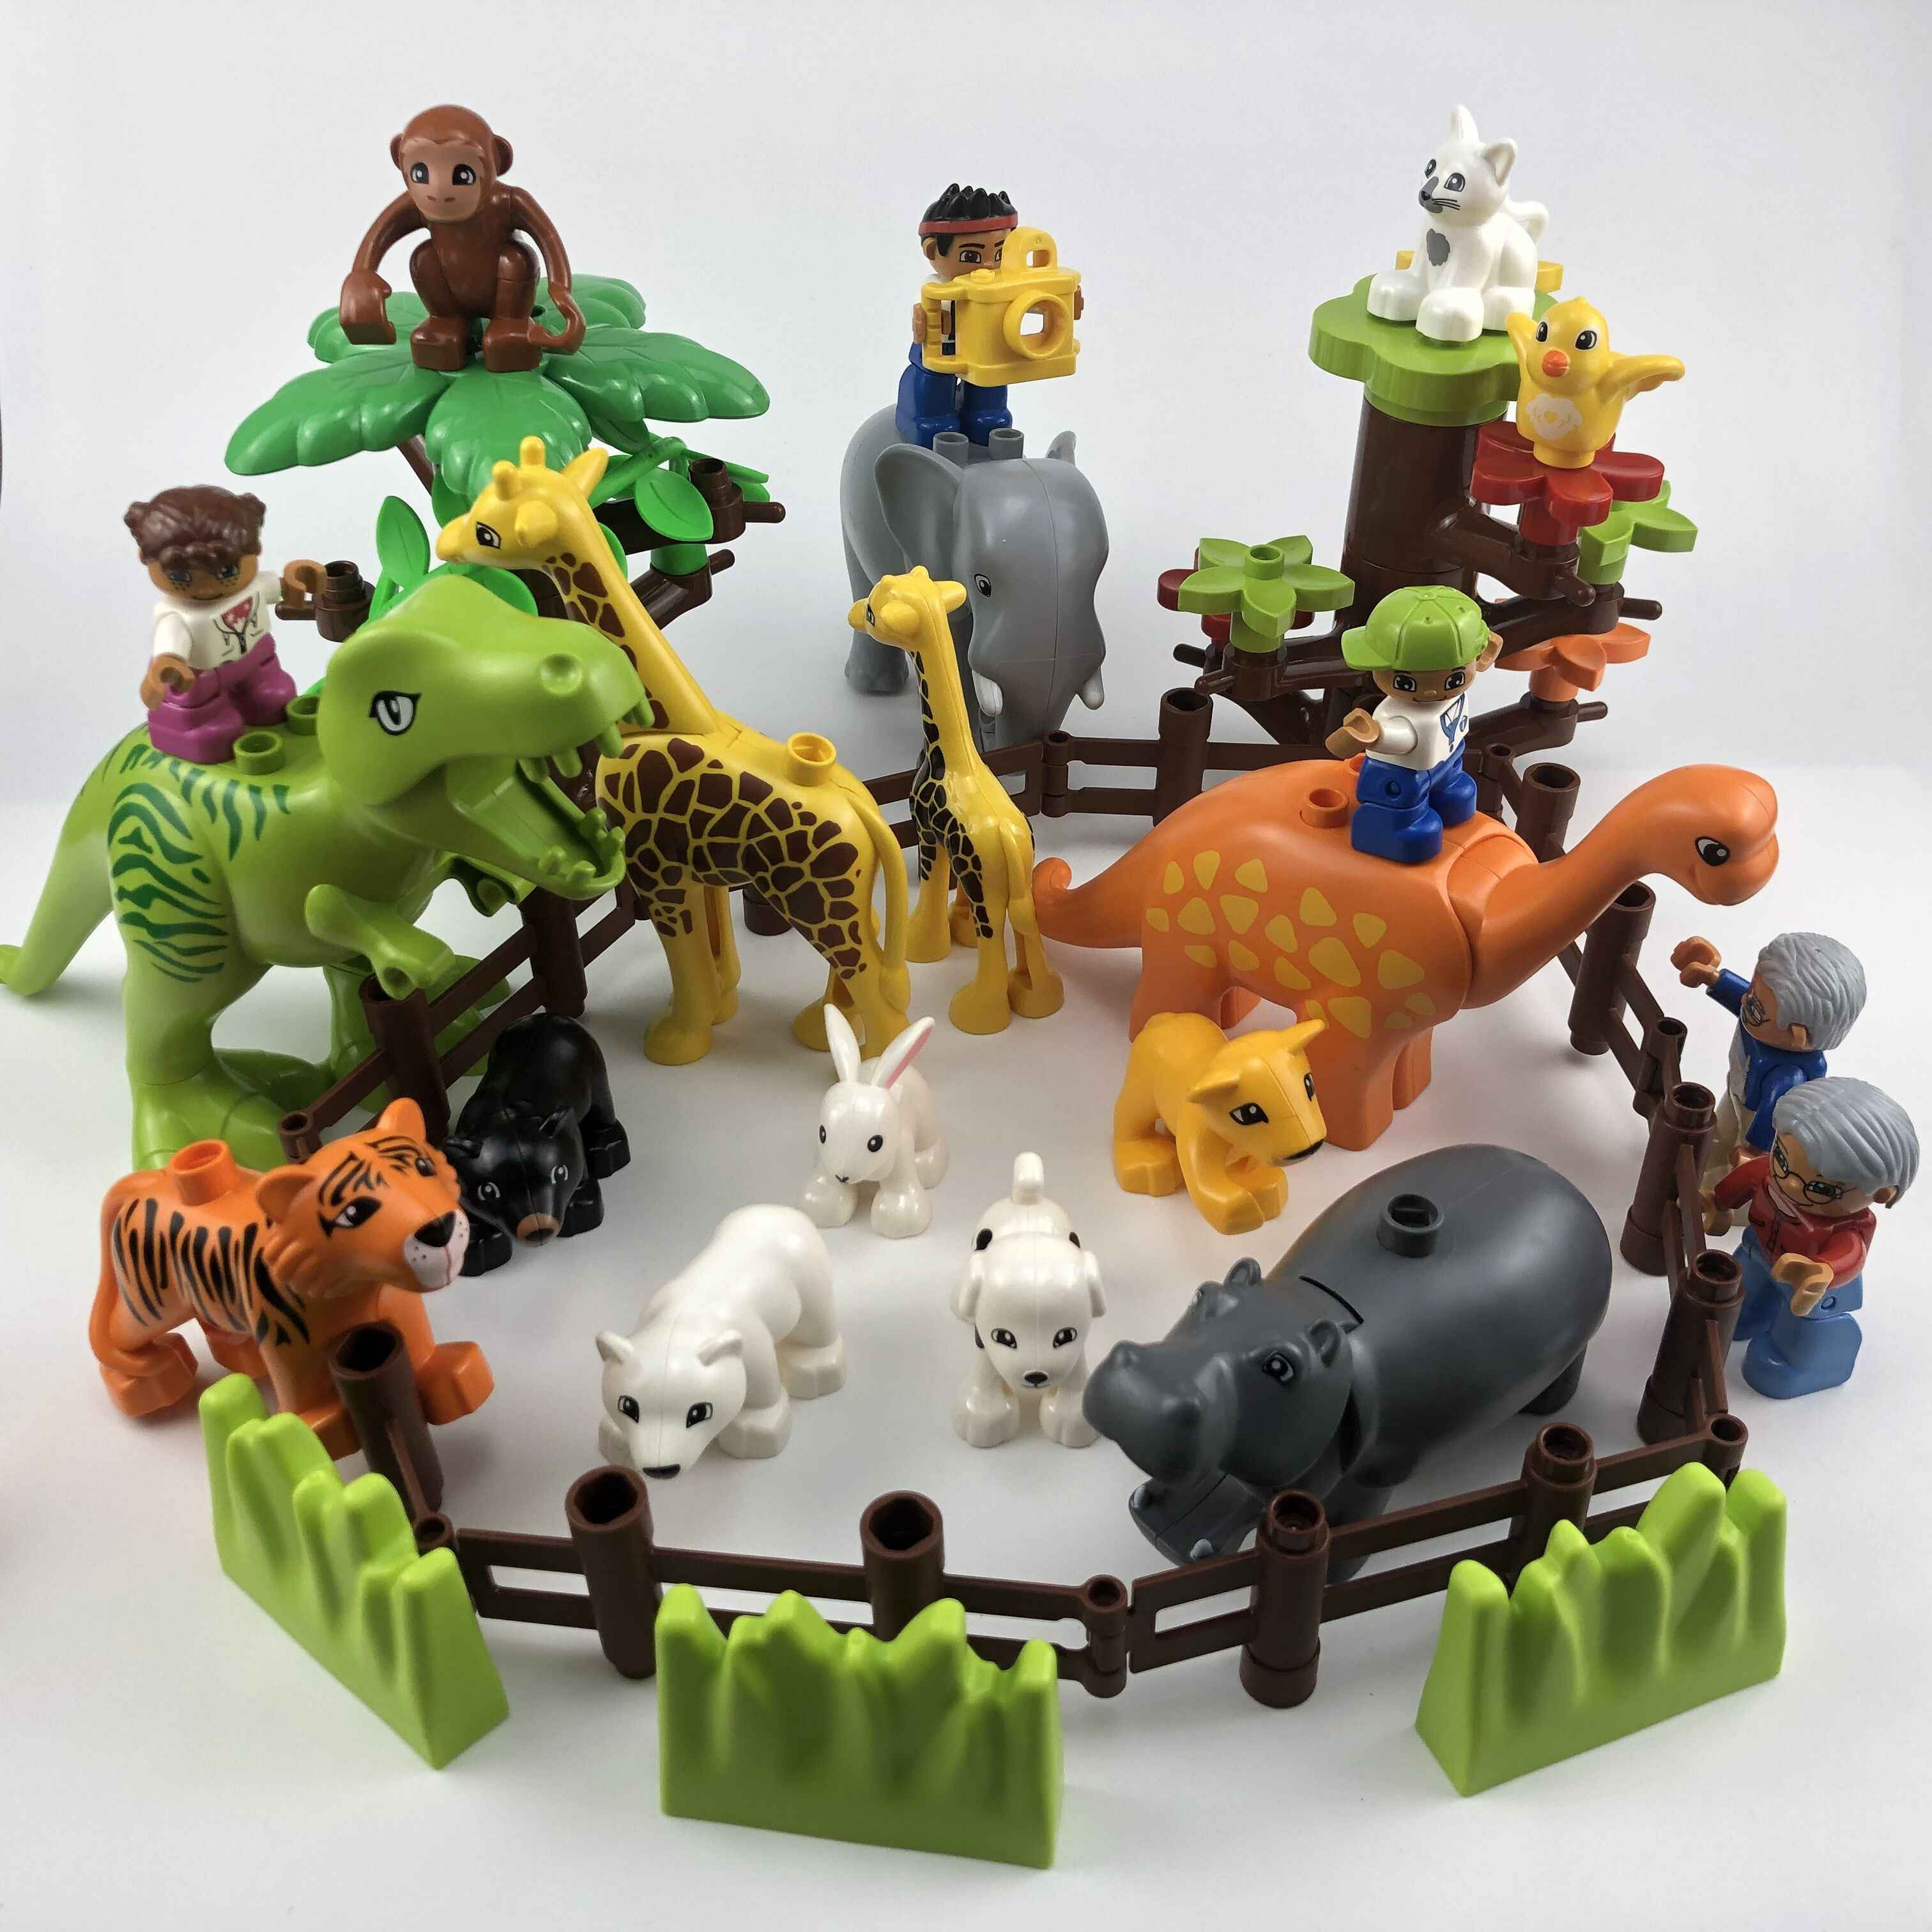 Legoing Duplo Animals Zoo Sheep Monkey Dog Beer Rabbit Bird Building Blocks Toys for Children Compatible Duplo Legoing Figures